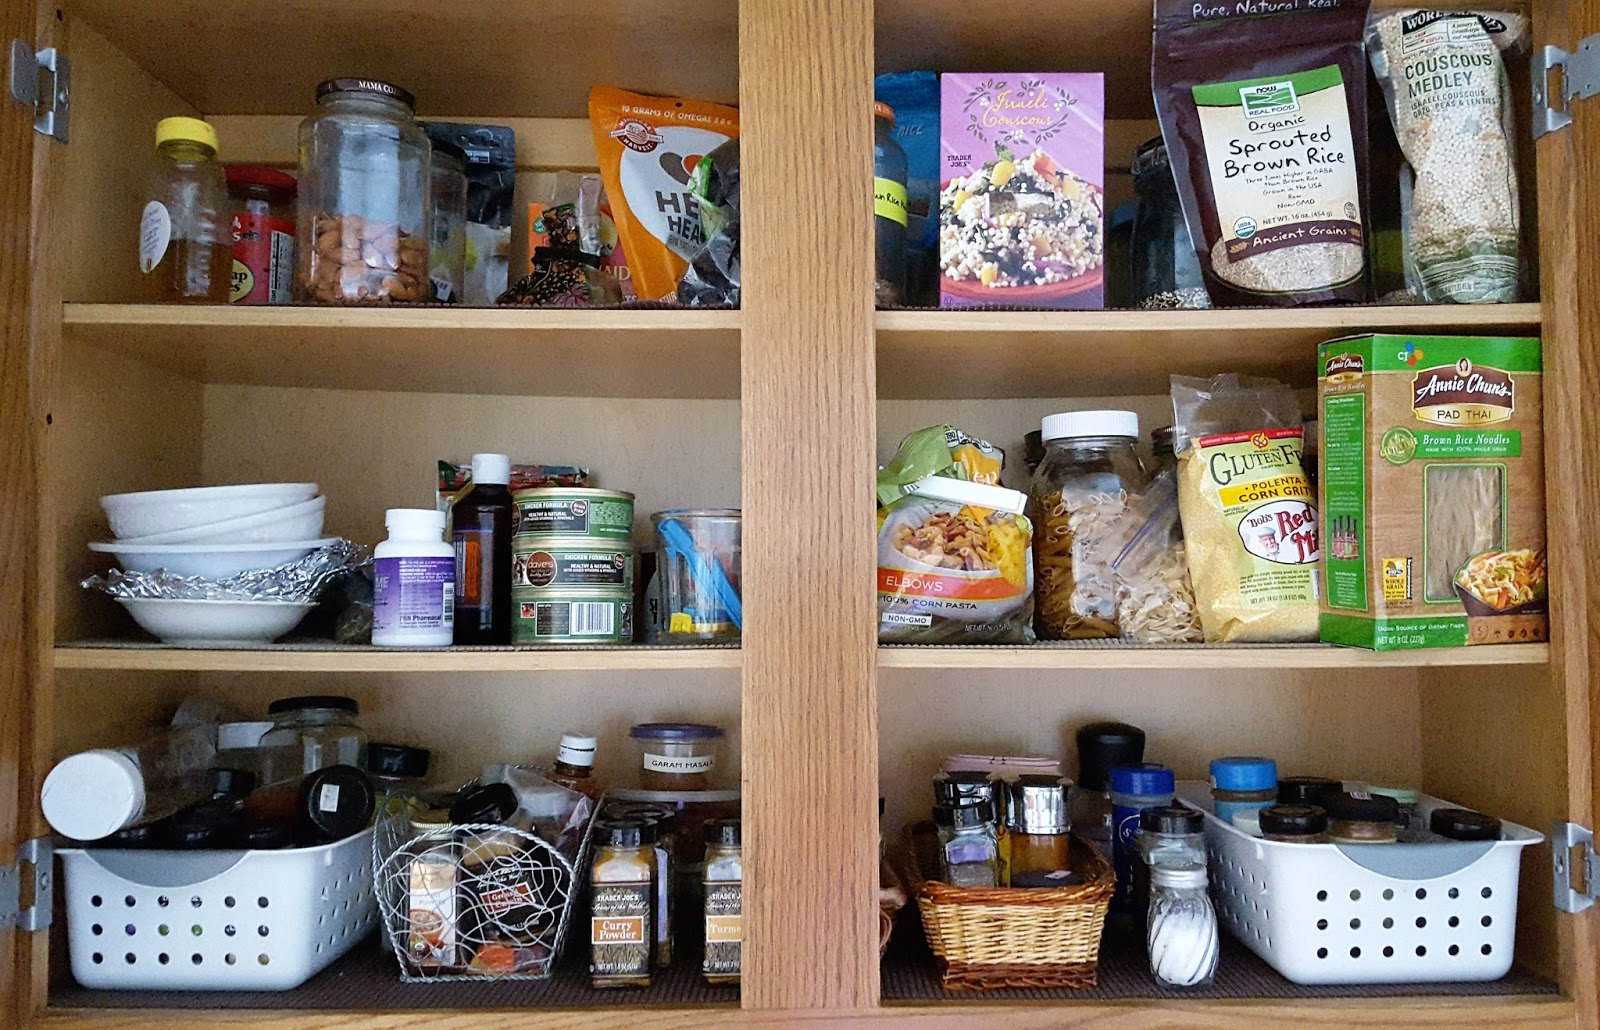 COMFY HOUSE: Organizing Kitchen Cabinets And Drawers